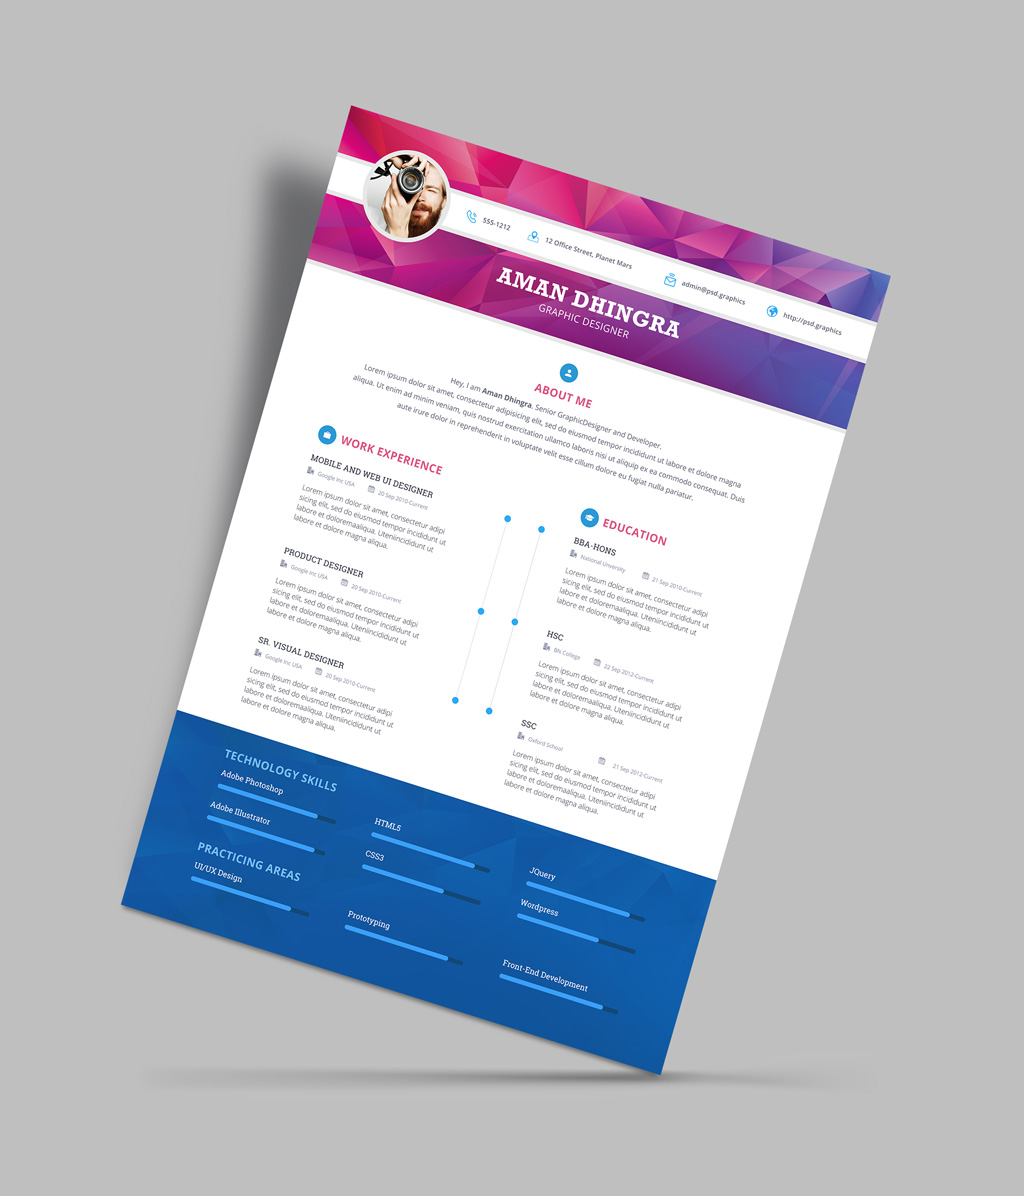 Free Professional Resume (CV) Design Template For Designers PSD File (4)